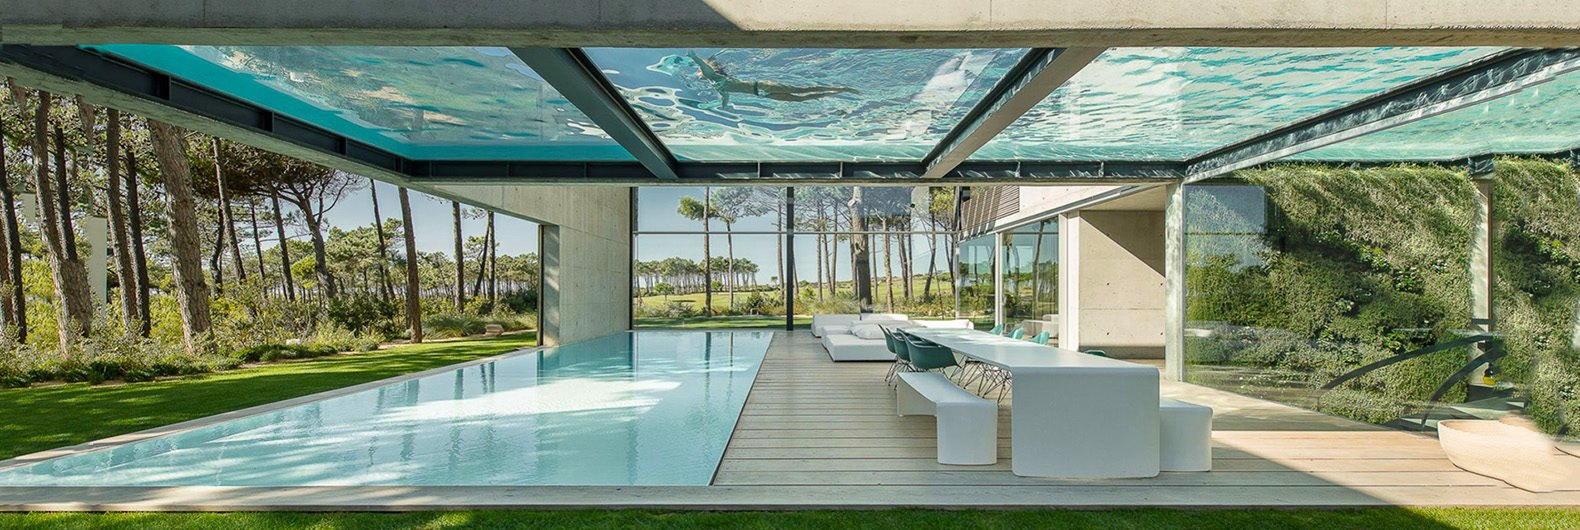 Elevated glass-bottomed pool hovers over a second pool in the hip ...